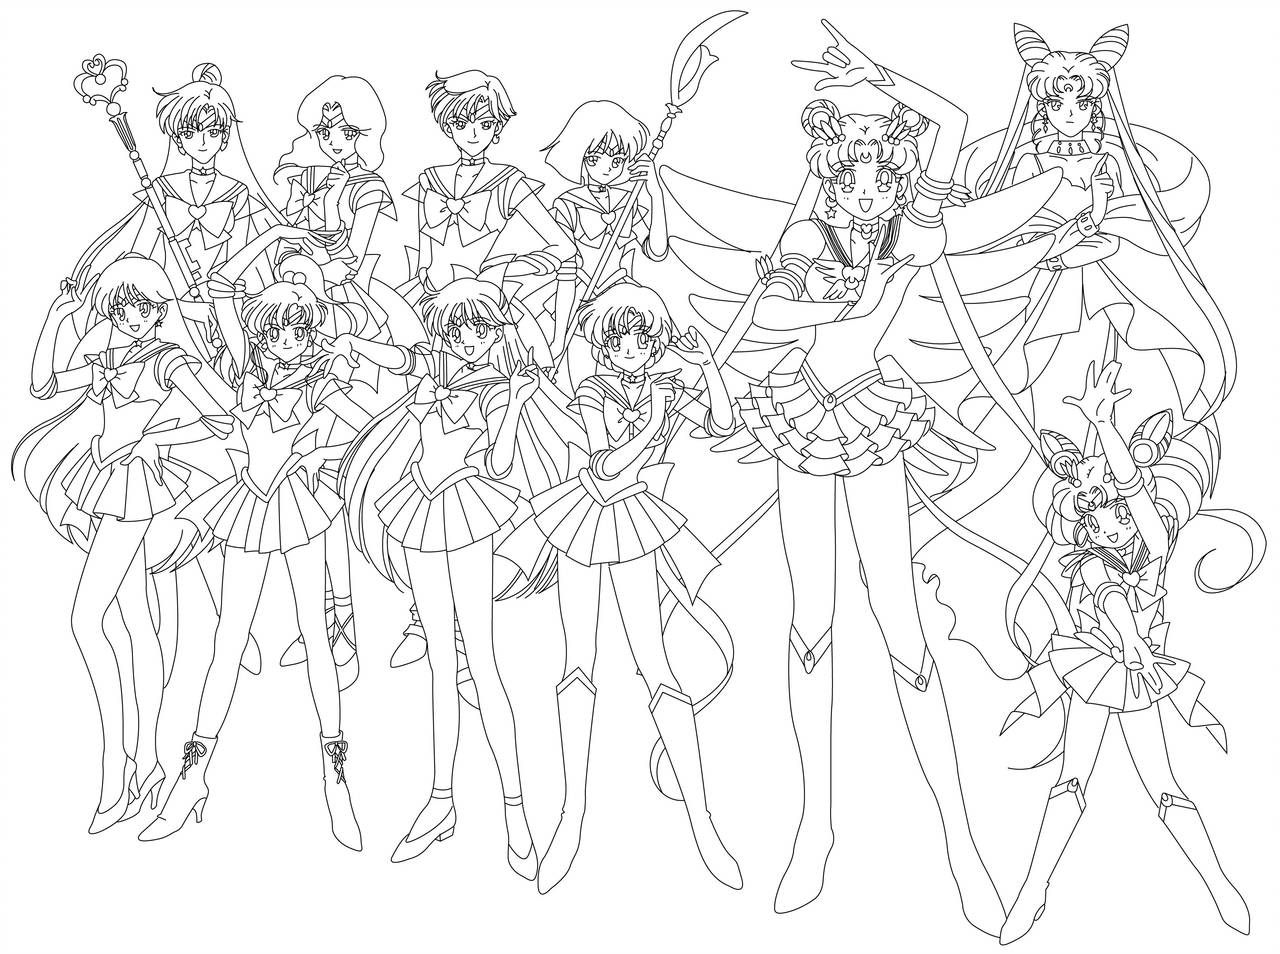 Sailor Group Blank By Sailor Jade Iris On Deviantart Sailor Moon Coloring Pages Moon Coloring Pages Sailor Moon